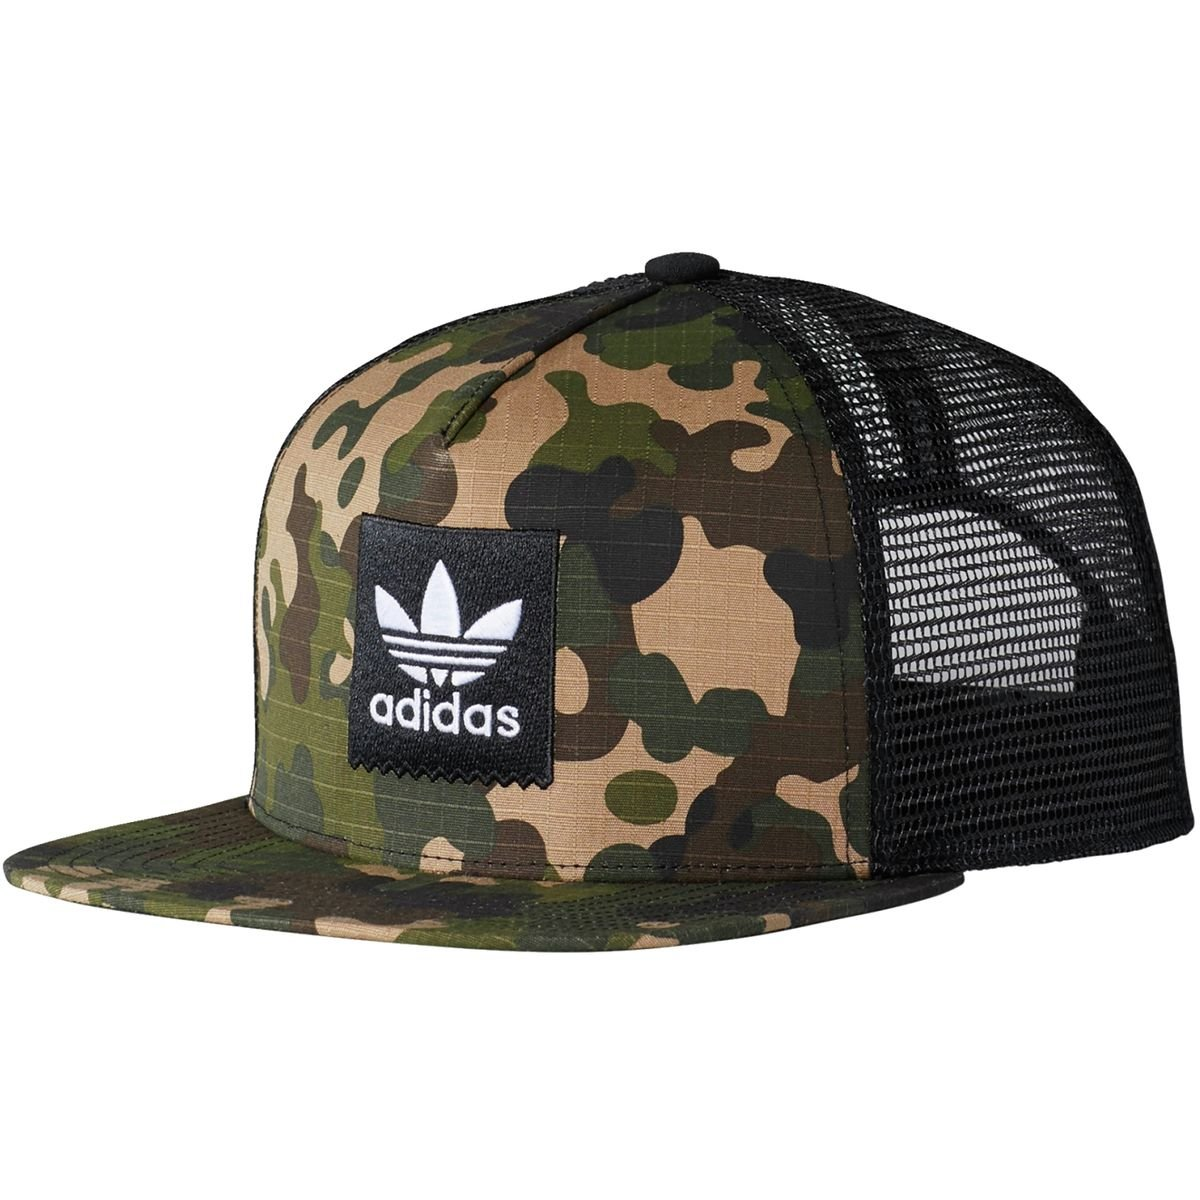 adidas Camo Gorro de Trucker - BR3853-One Size, Multco: Amazon.es ...